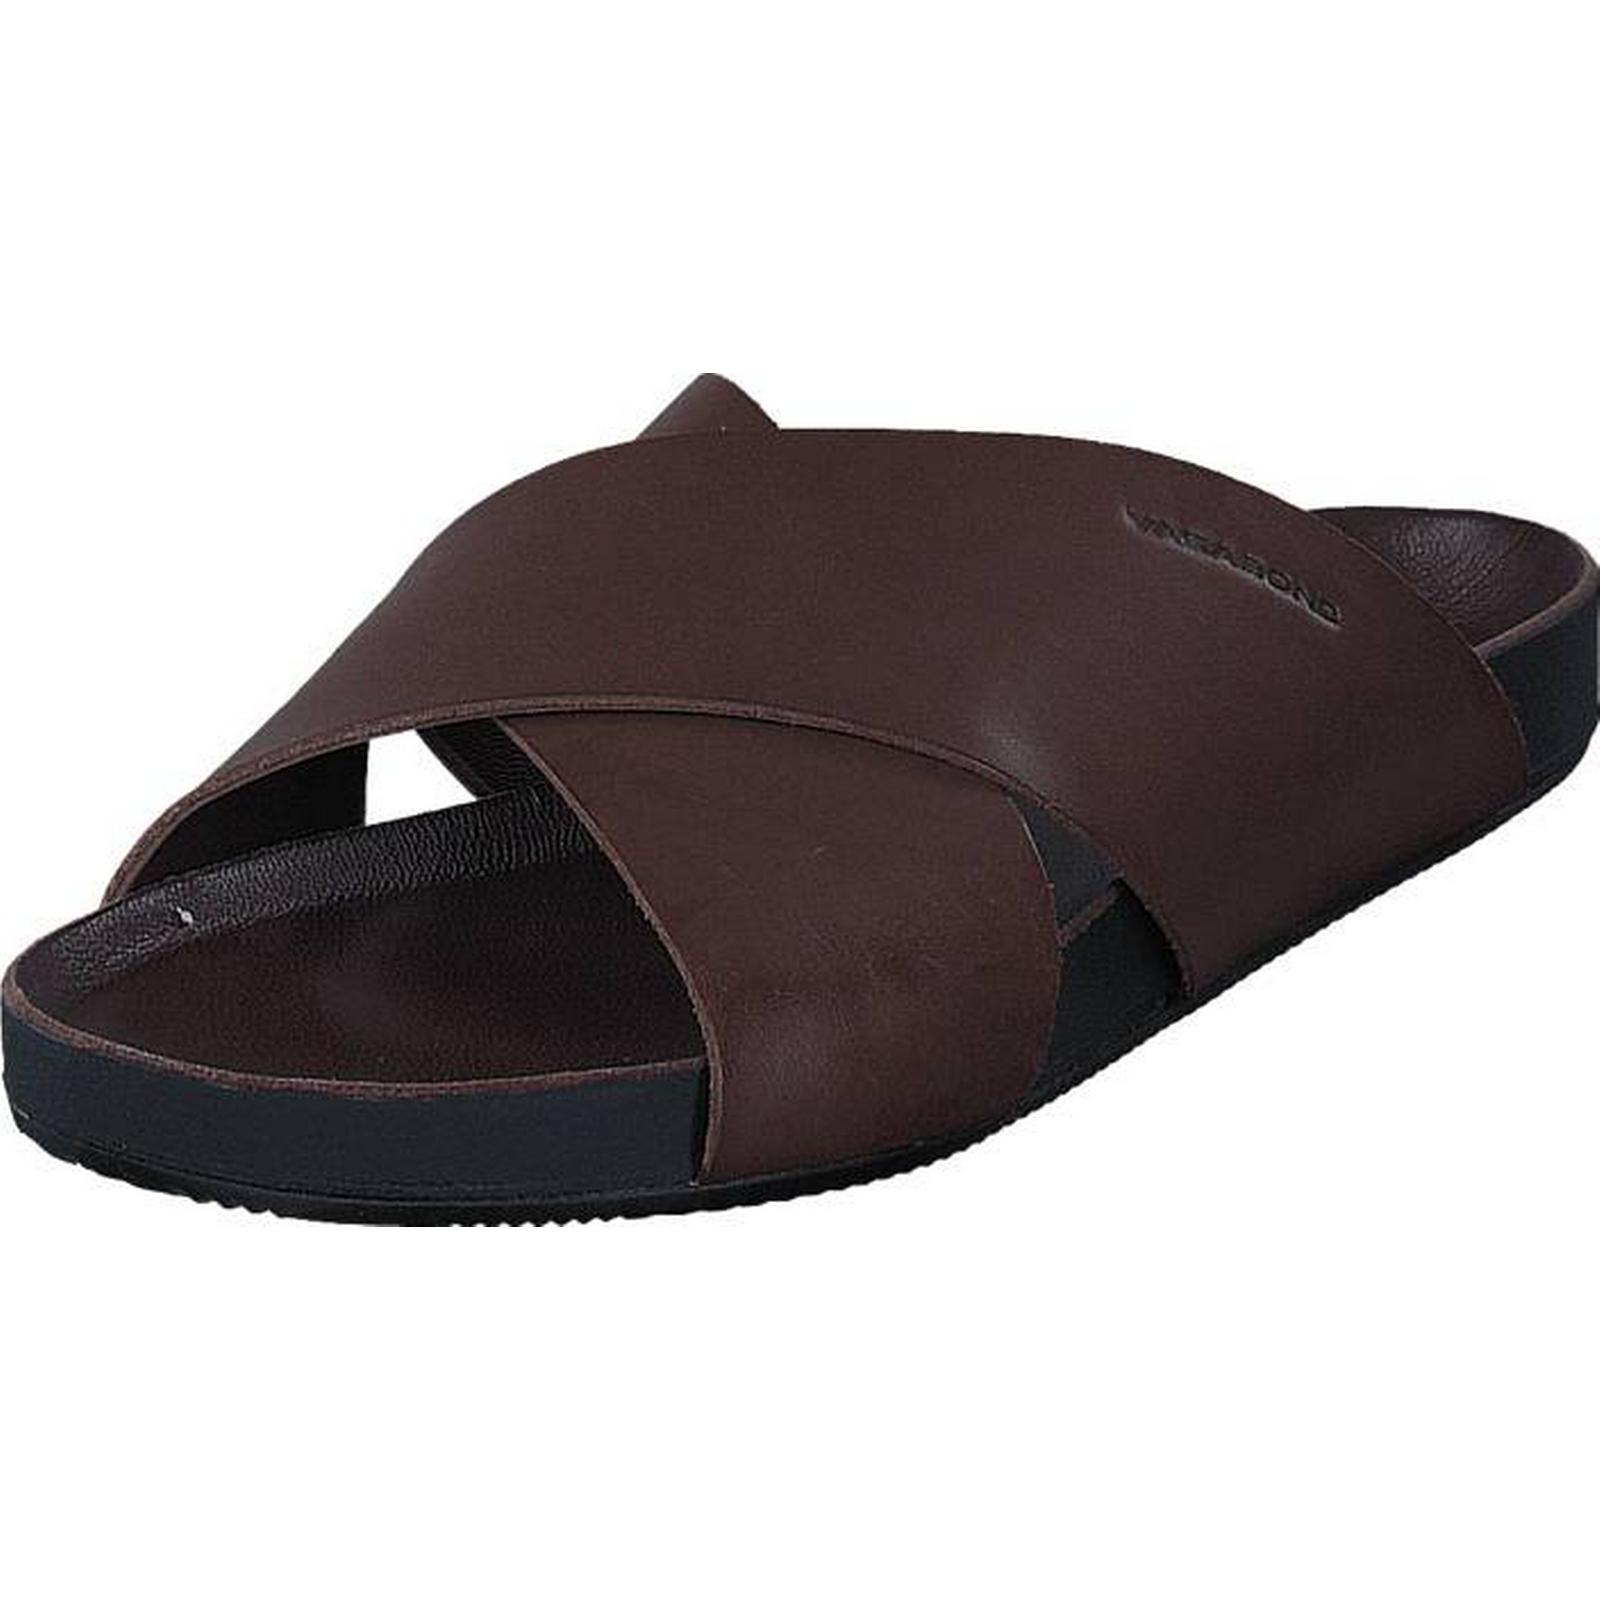 Vagabond Funk 4390-001-34 34 Dk Brown, Shoes, & Sandals & Shoes, Slippers, Sandals, Blue, Brown, Male, 44 0726a6